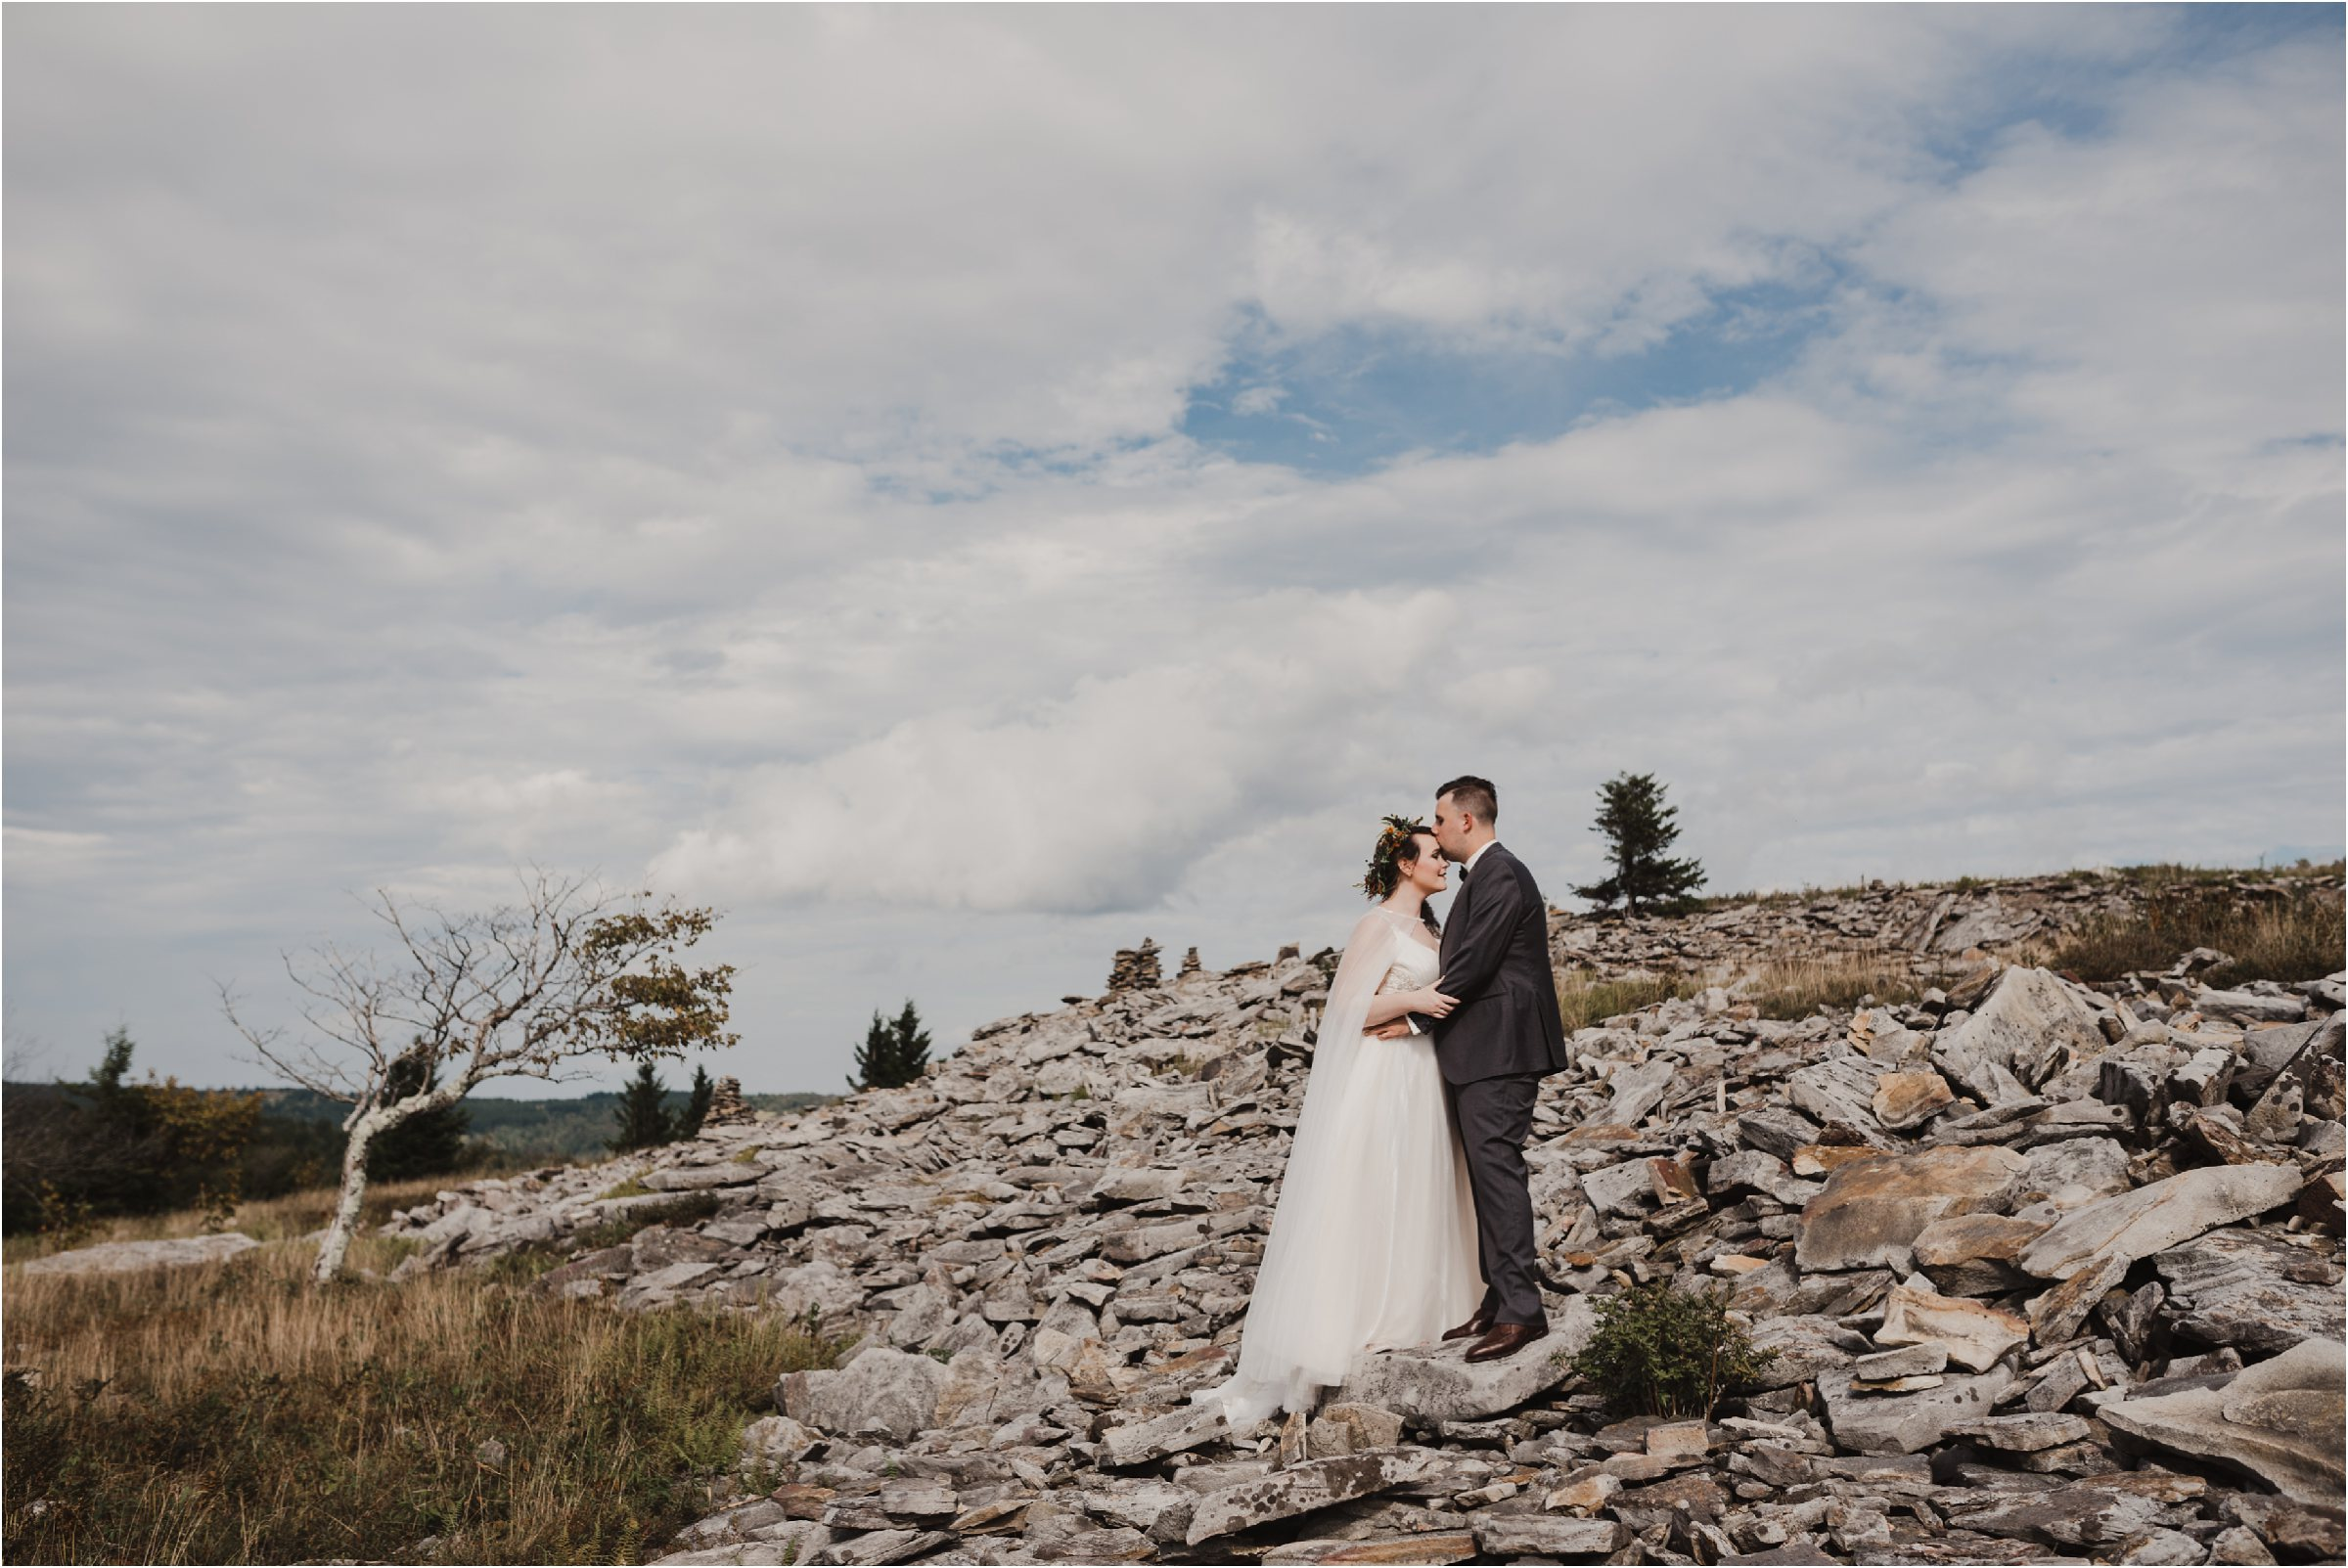 Bride and groom at Dolly Sods during wedding